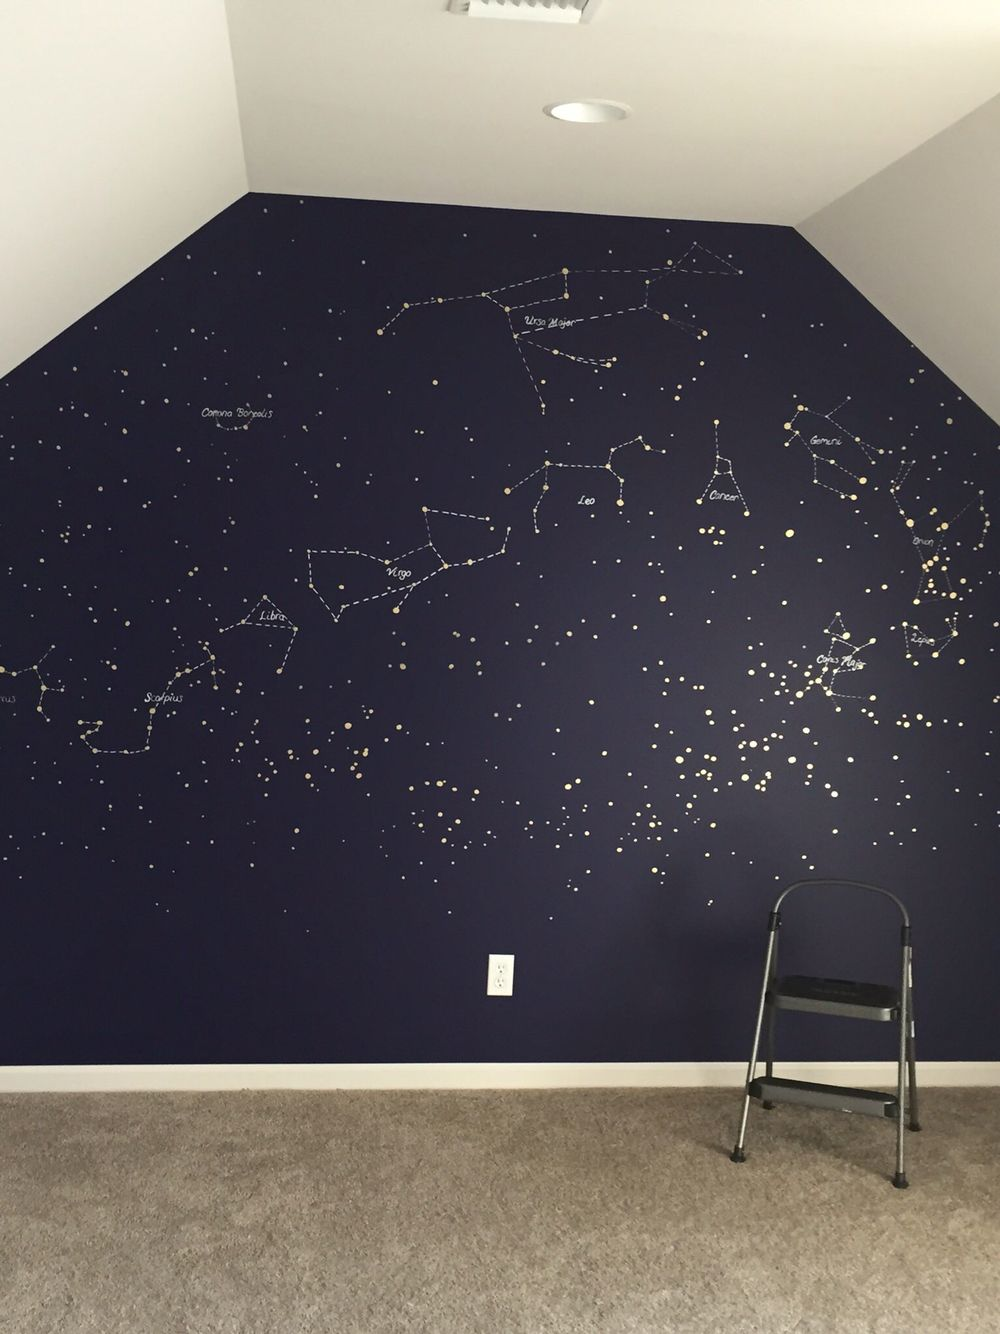 Constellation Map Mural Painted With Gold And Silver Paint Pens In - Constellation wall map